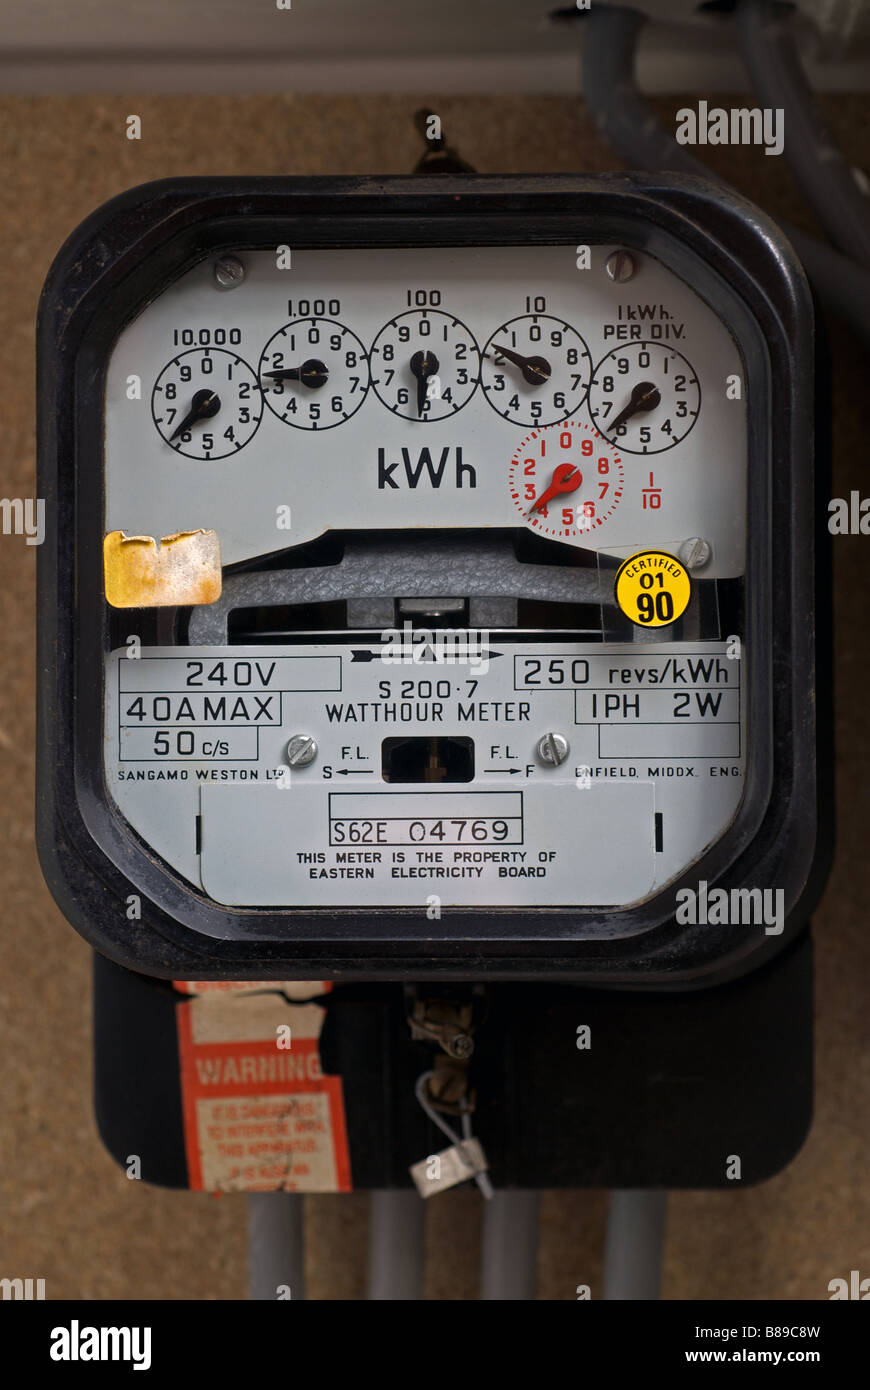 Domestic electricity meter, Bawdsey, Suffolk, UK. Stock Photo